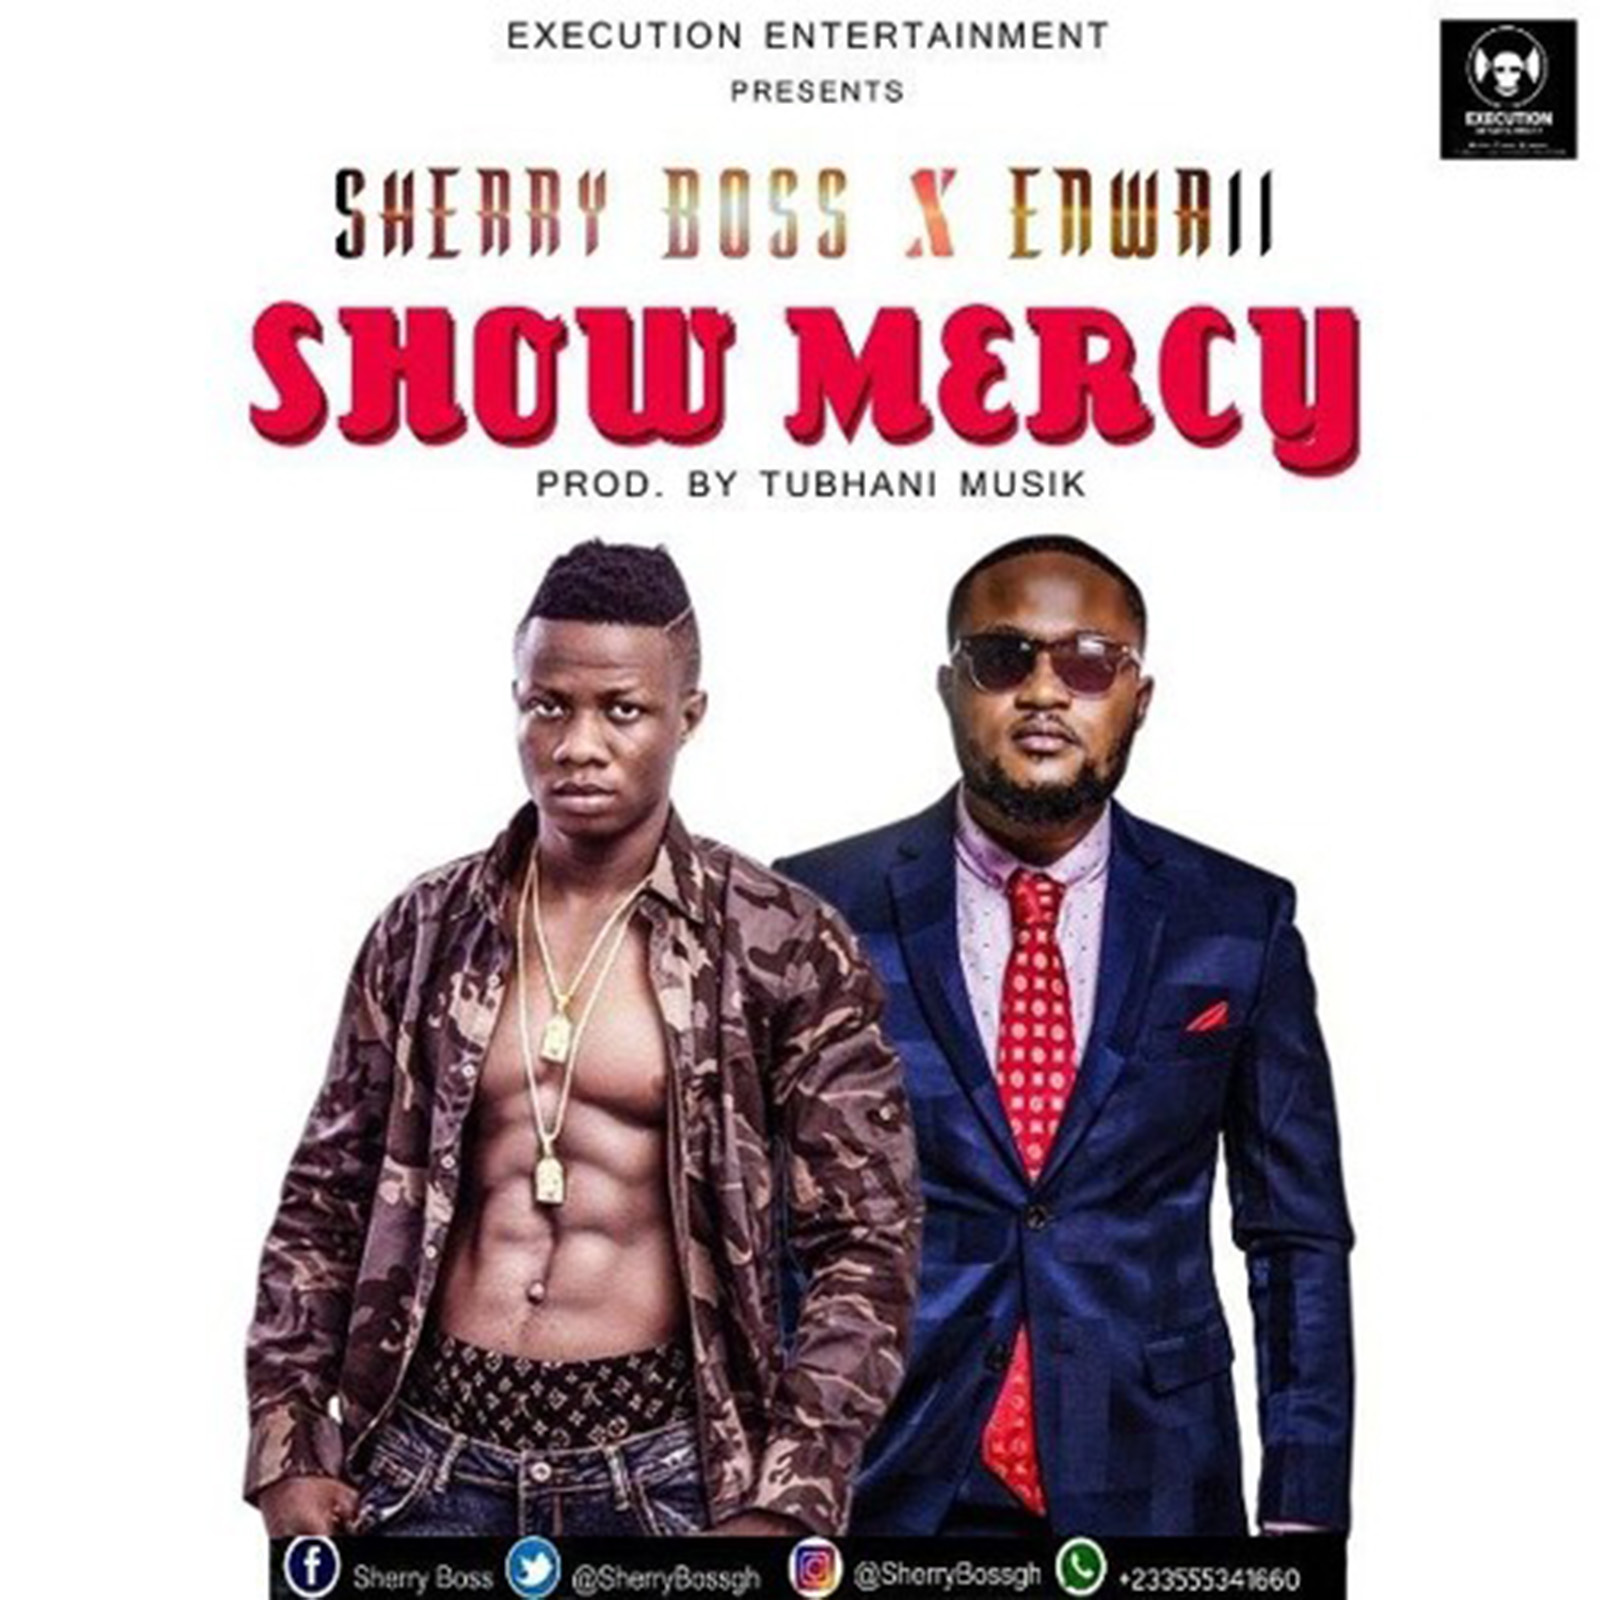 Show Mercy by Sherry Boss feat. Enwaii